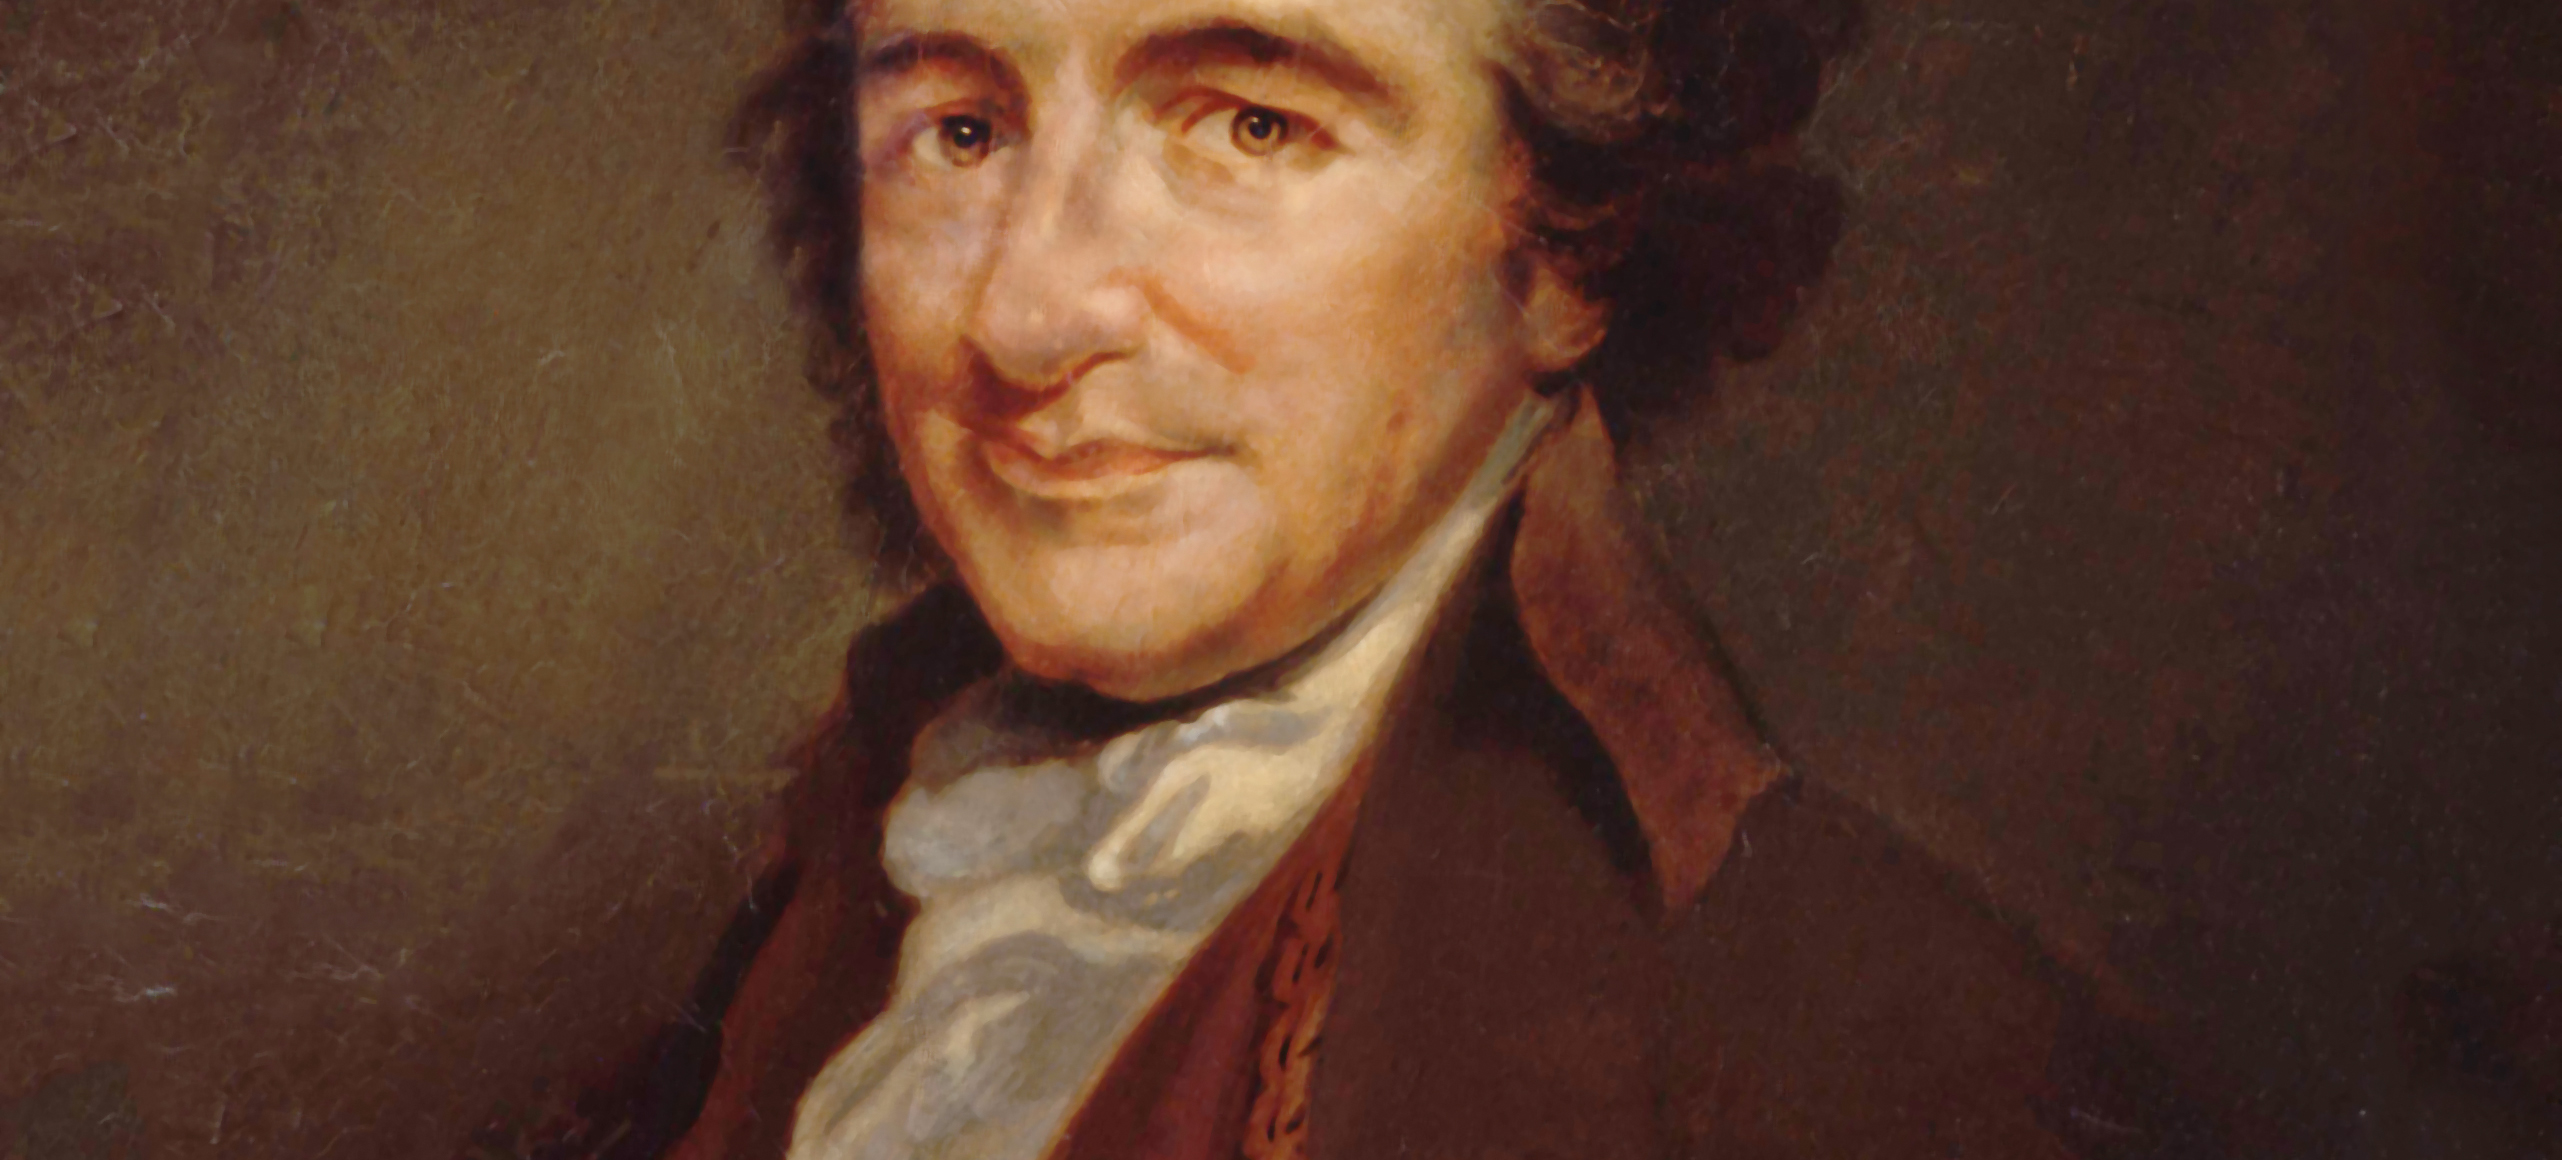 book review common sense by thomas paine